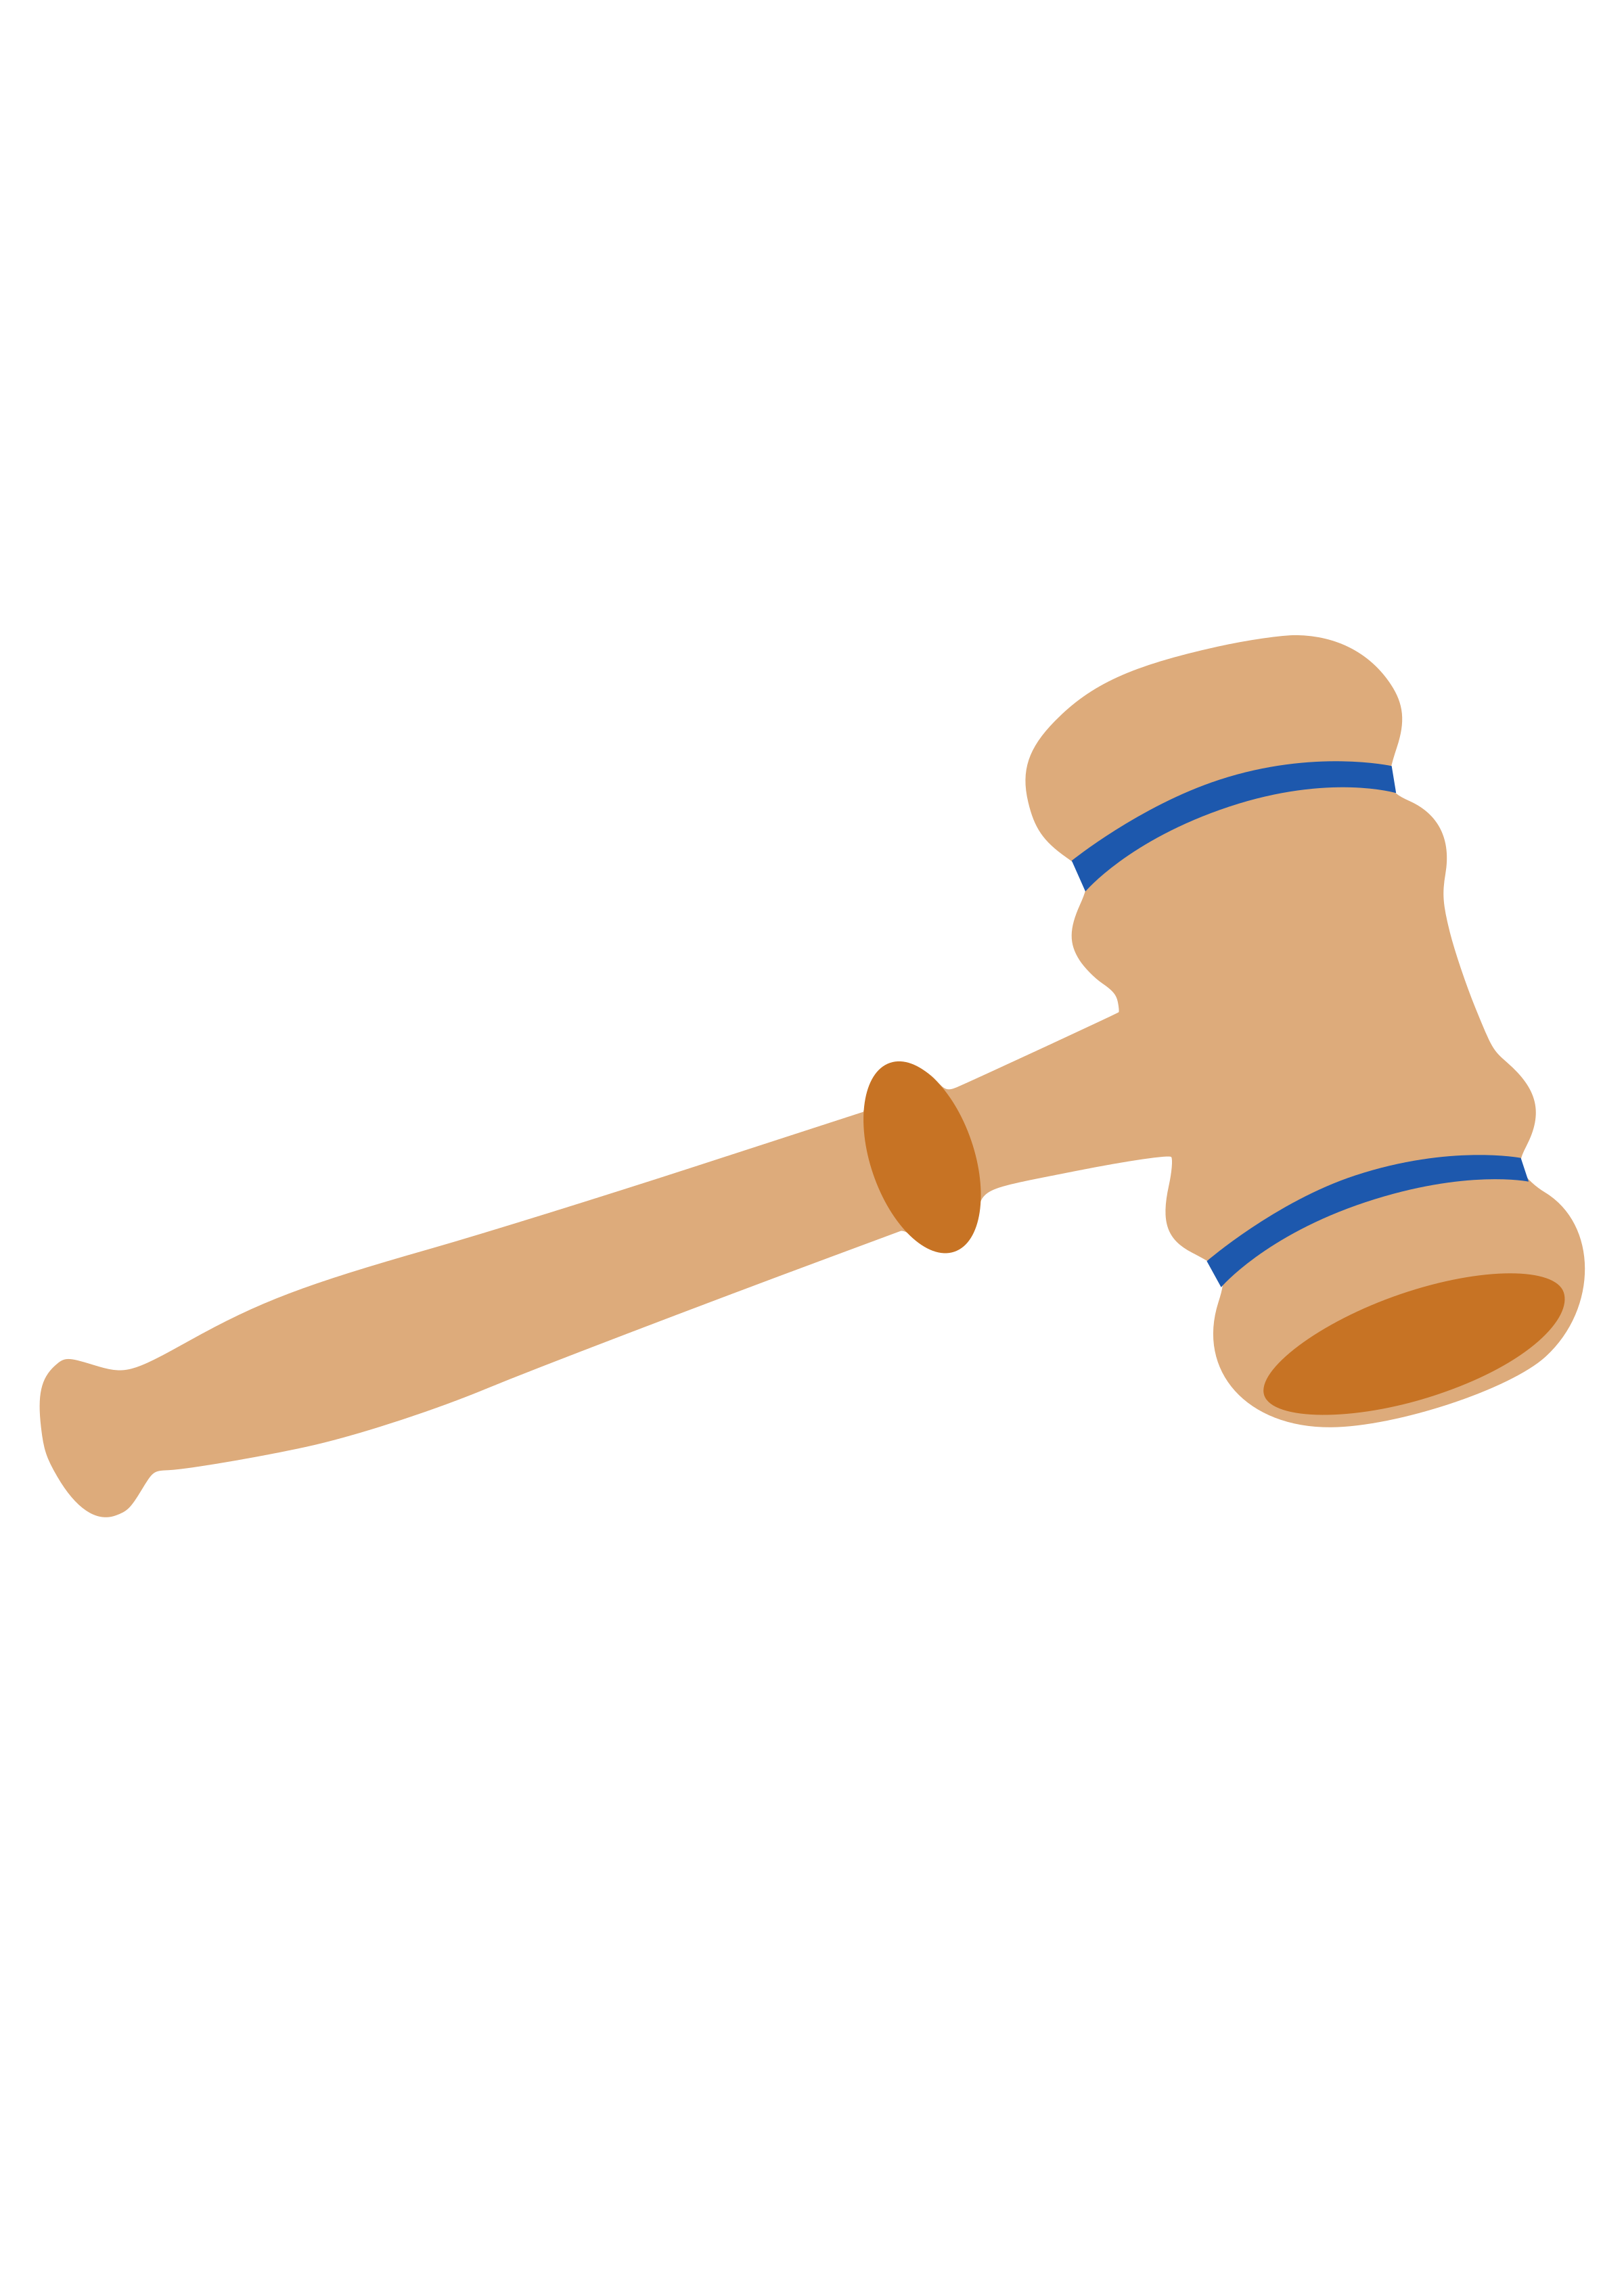 vector library download Gavel clipart. Big image png